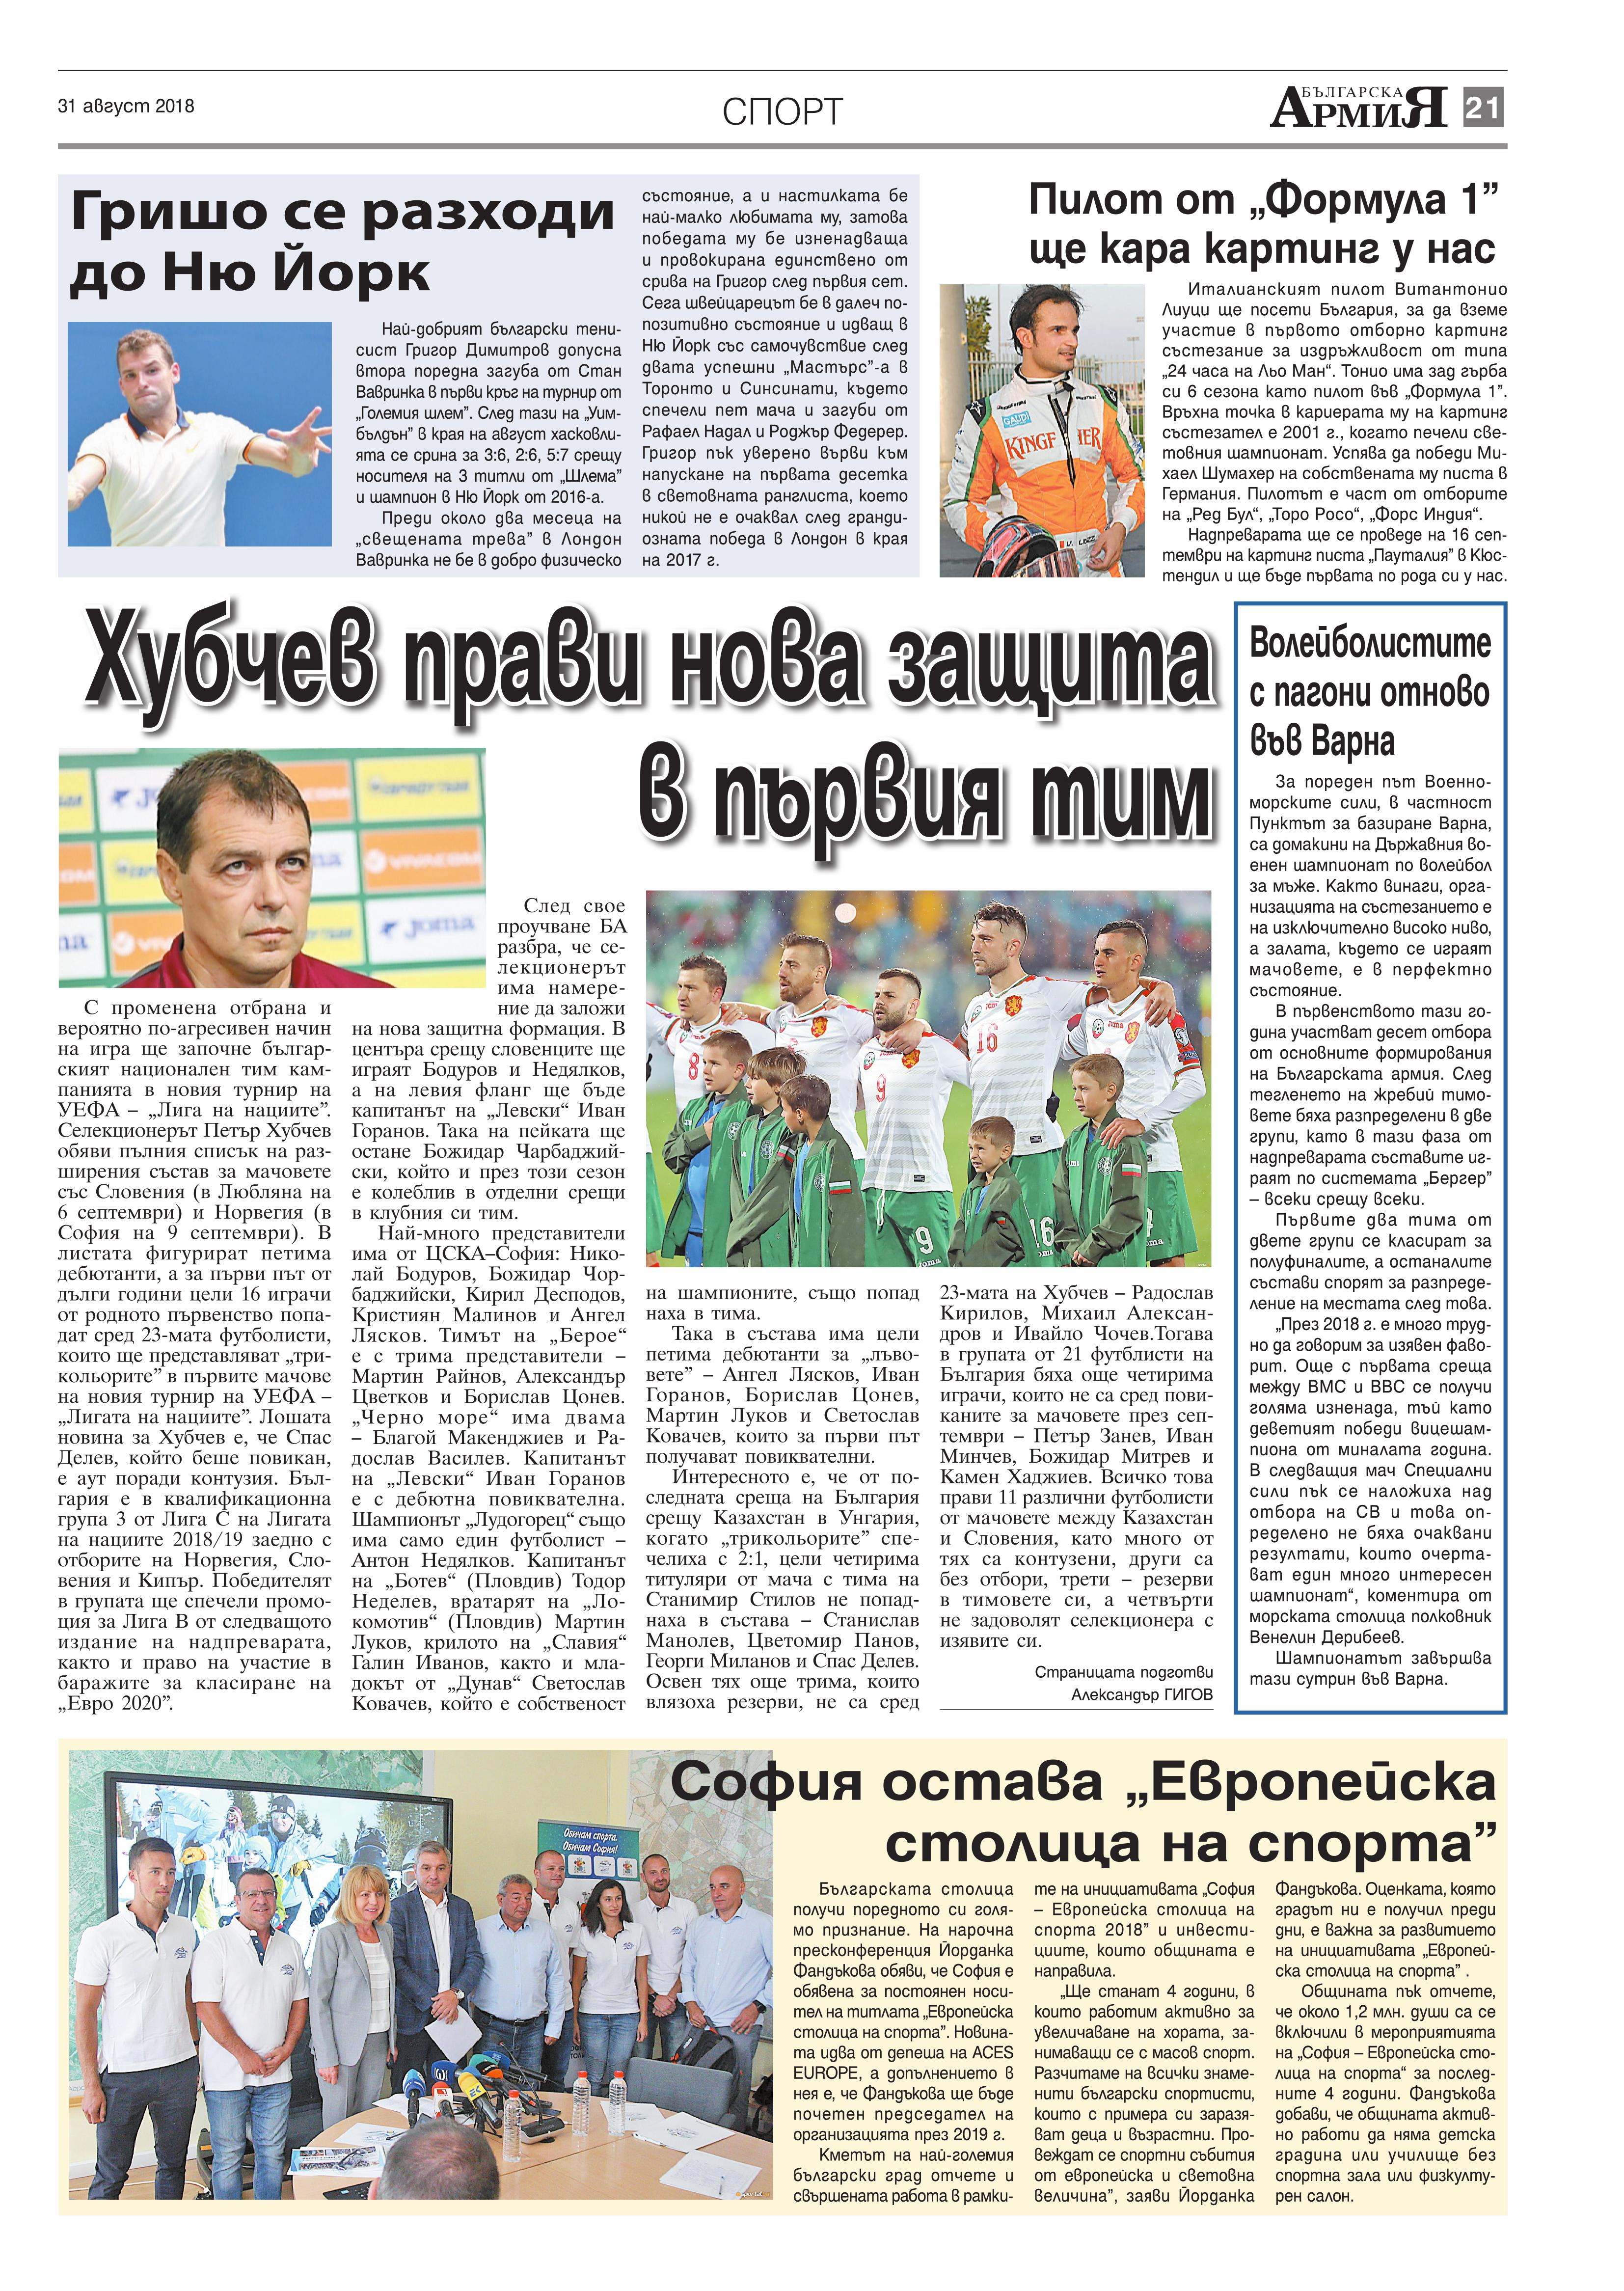 https://armymedia.bg/wp-content/uploads/2015/06/21.page1_-64.jpg